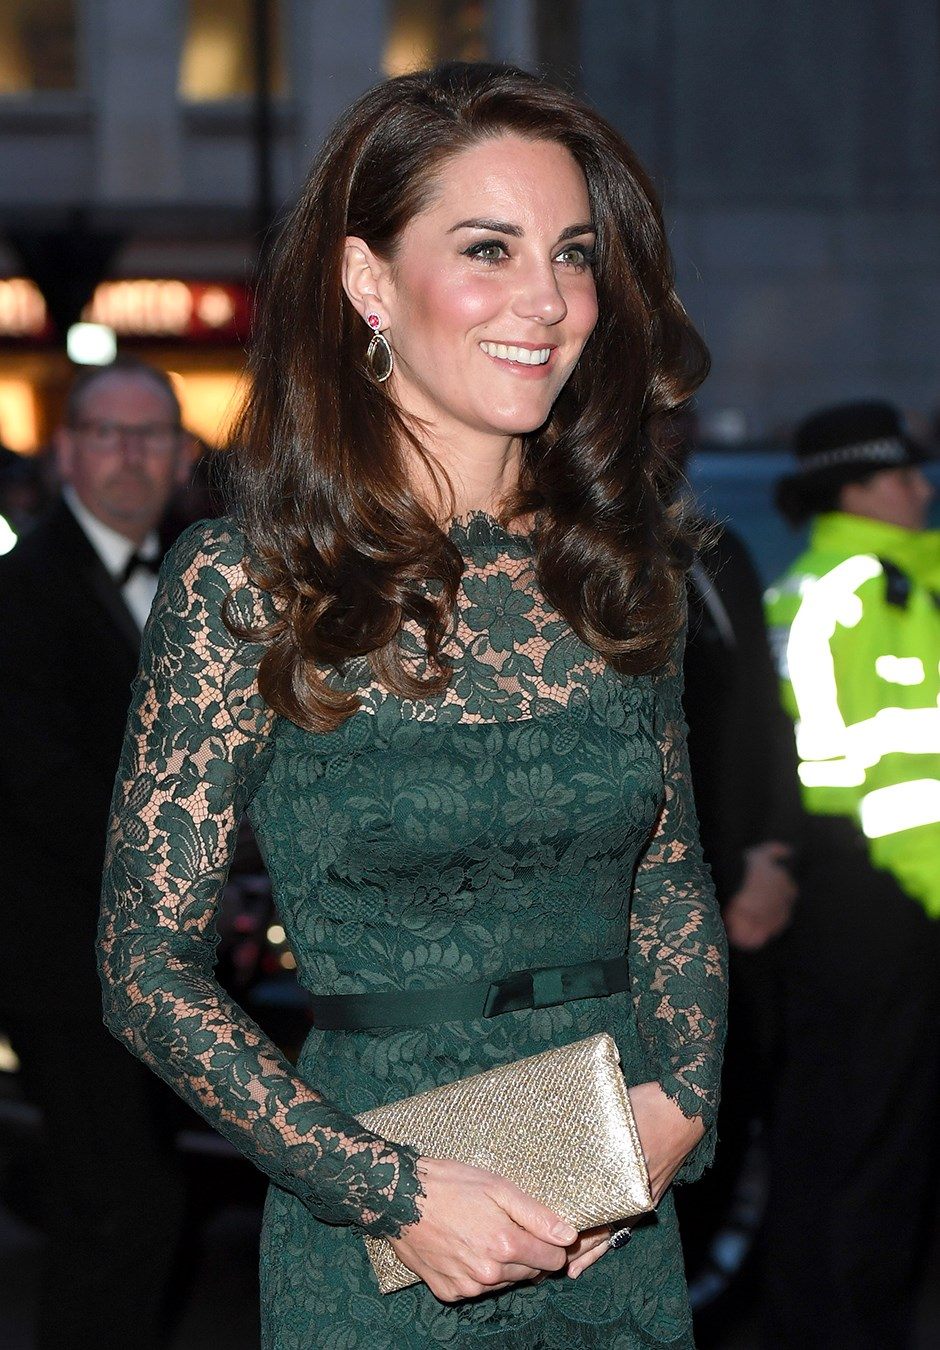 She paired the dress with gold accessories—a Wilbur & Gussie clutch and Jimmy Choo shoes—and a matching green pair of Kiki McDonough earrings. Chic.